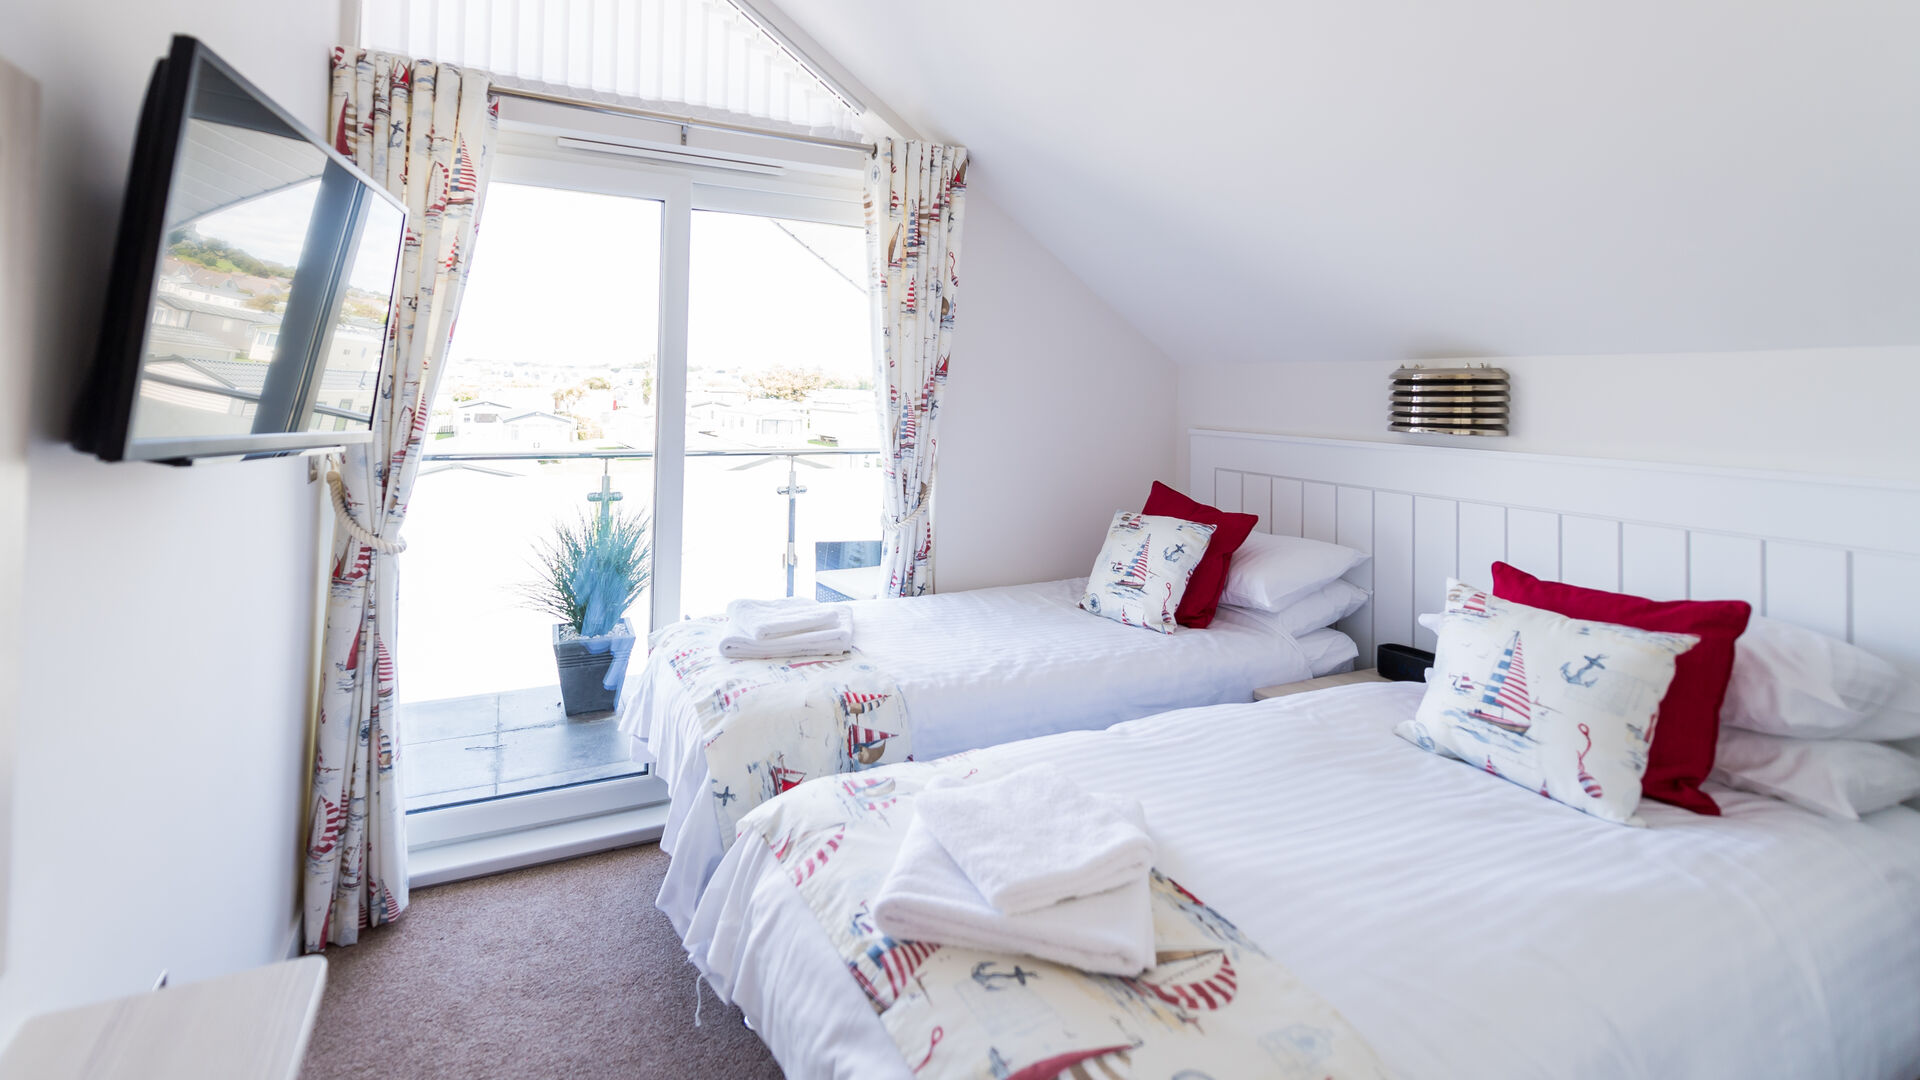 Beachcomber holiday apartment at surf bay holiday park